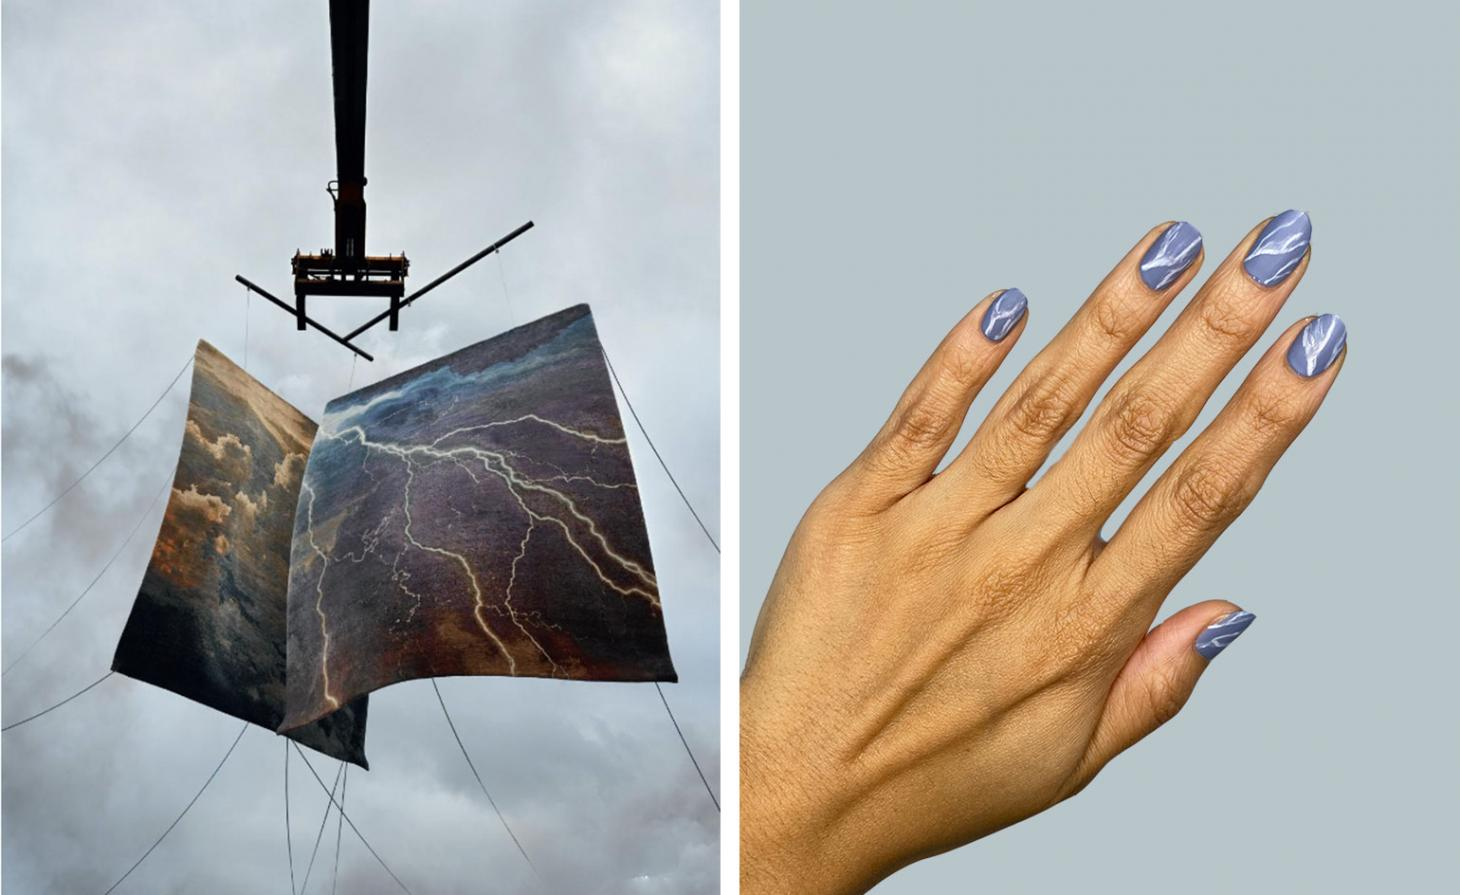 two rugs hanging in the sky, next to nails painted with blue and white stripes